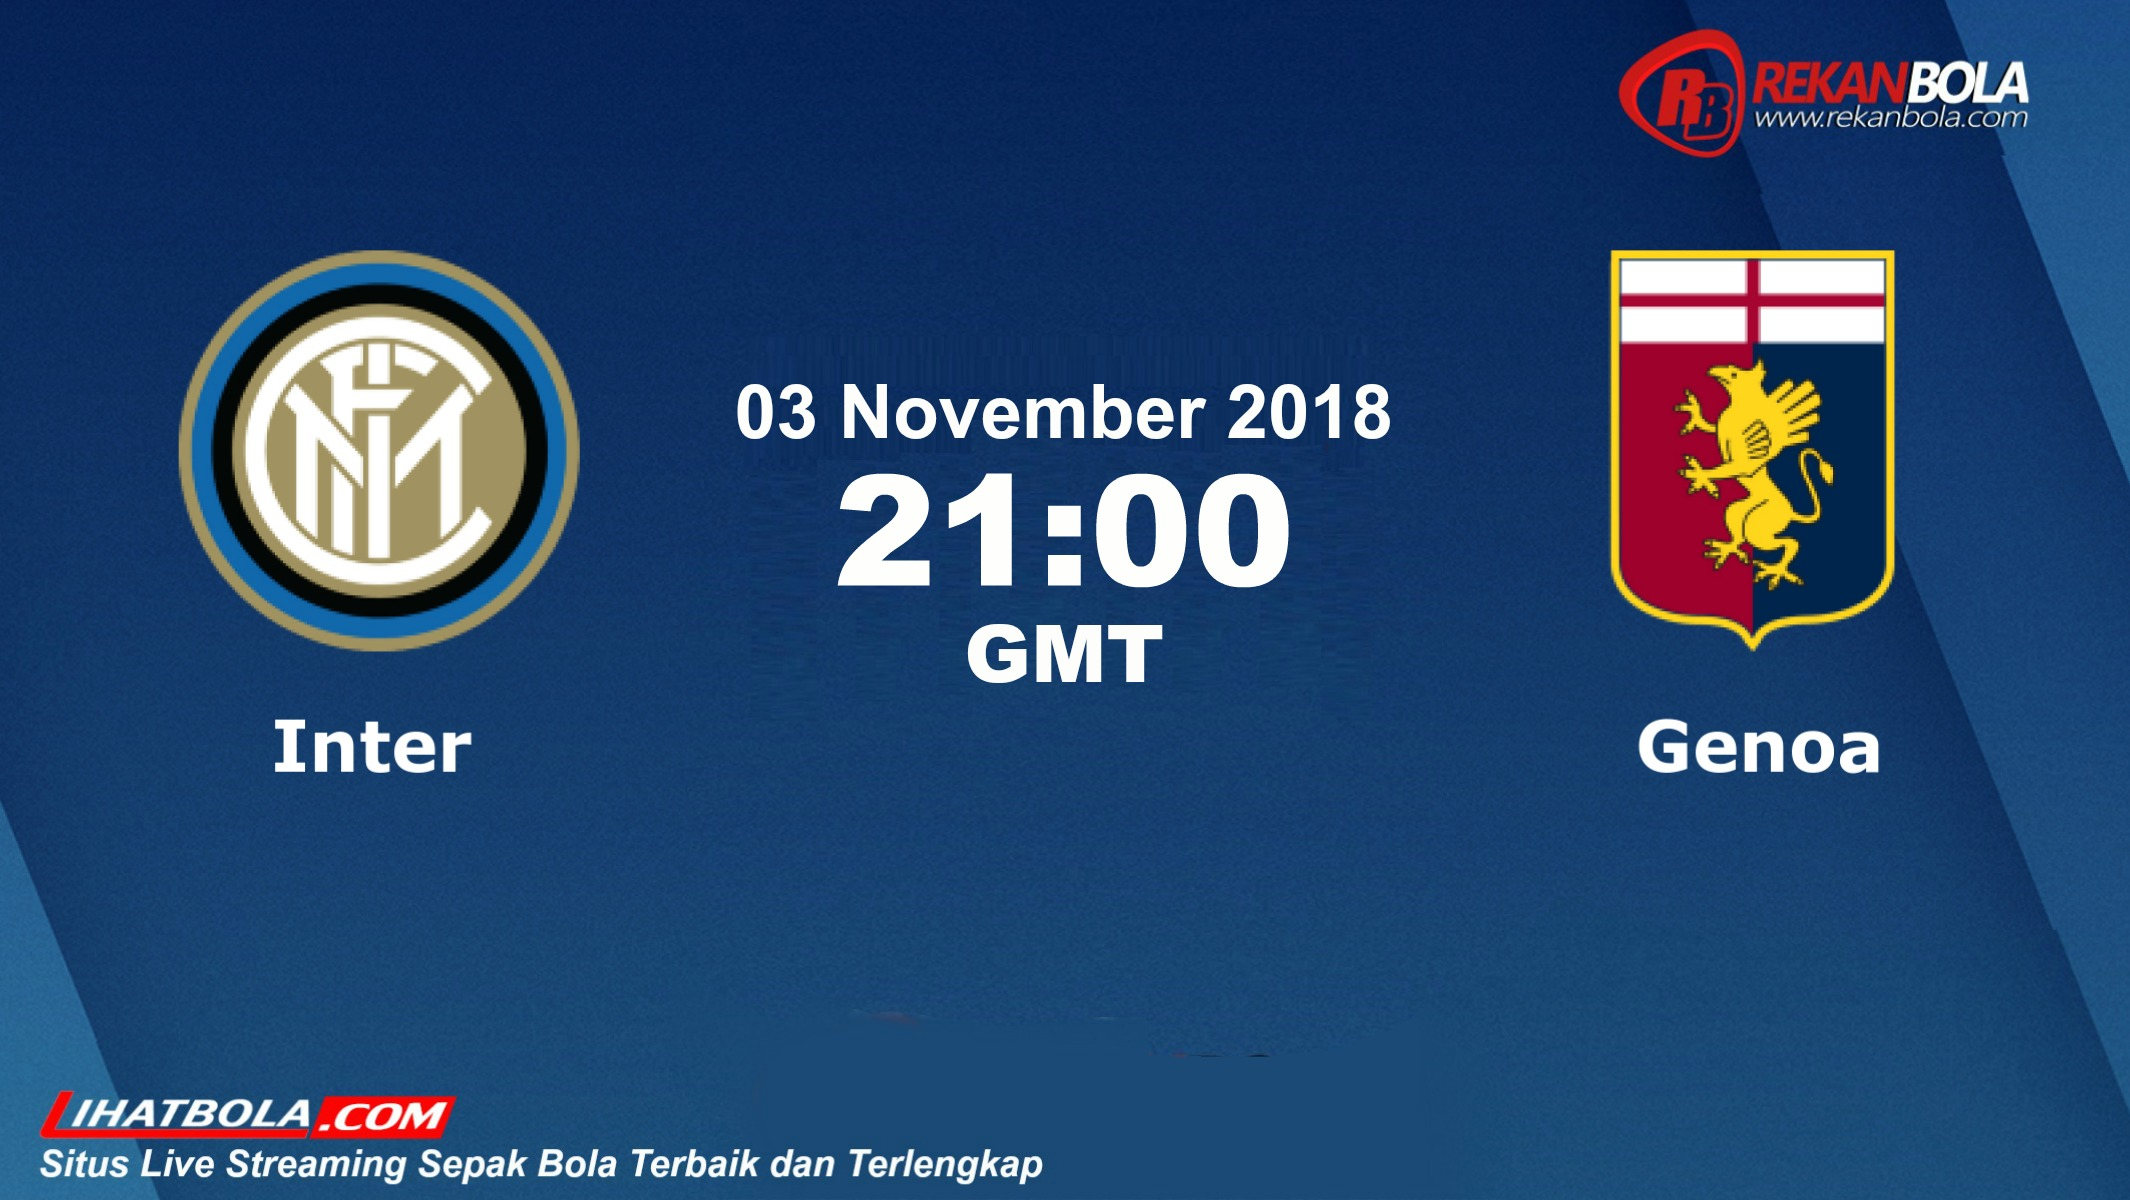 Nonton Siaran Live Streaming Inter Vs Genoa 03 November 2018